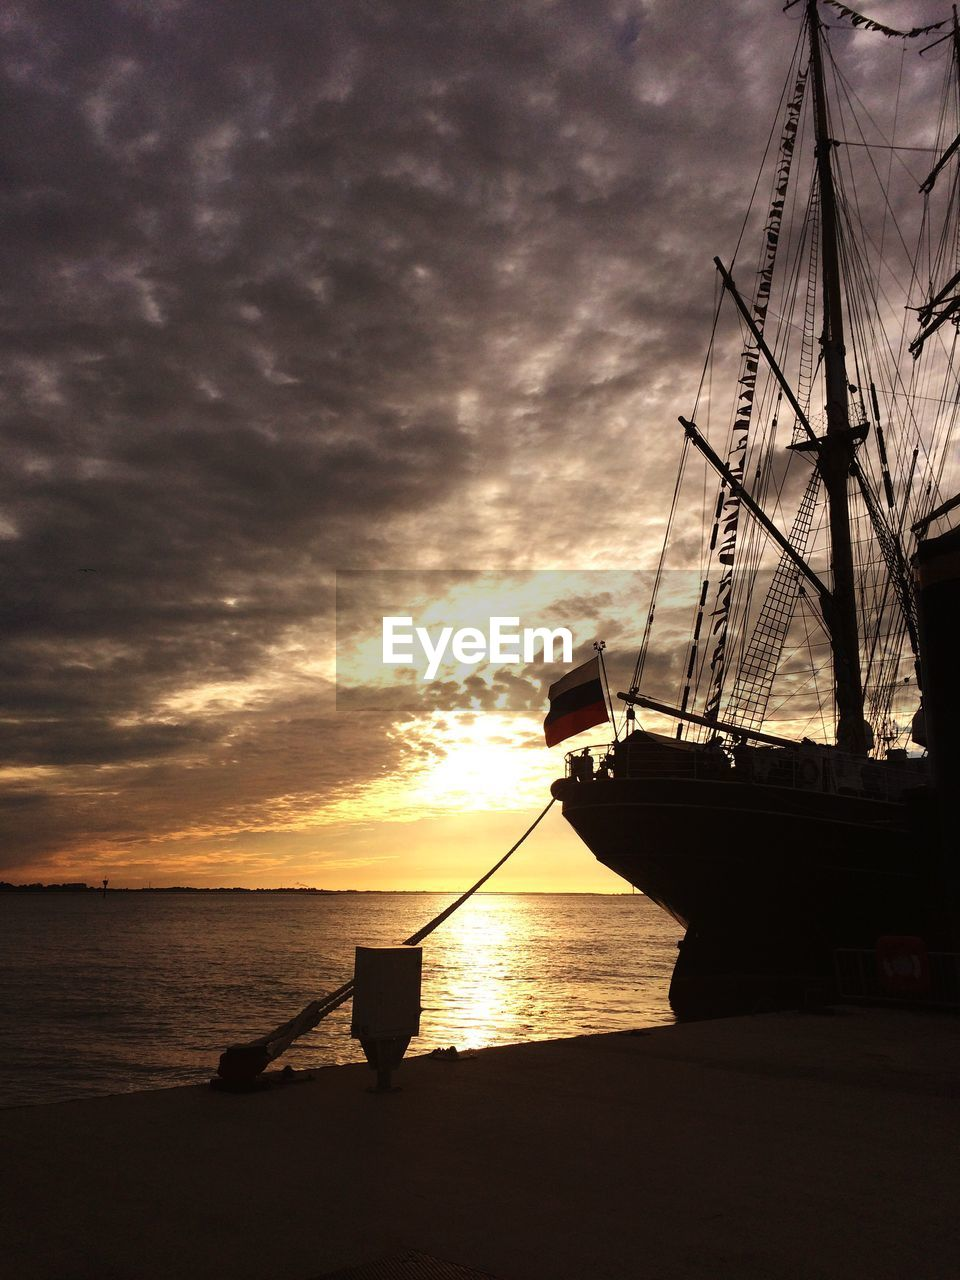 sunset, sea, water, nautical vessel, silhouette, nature, sky, beauty in nature, scenics, tranquility, tranquil scene, horizon over water, cloud - sky, mast, mode of transport, no people, transportation, outdoors, sailboat, sun, moored, travel destinations, sailing ship, sailing, tall ship, day